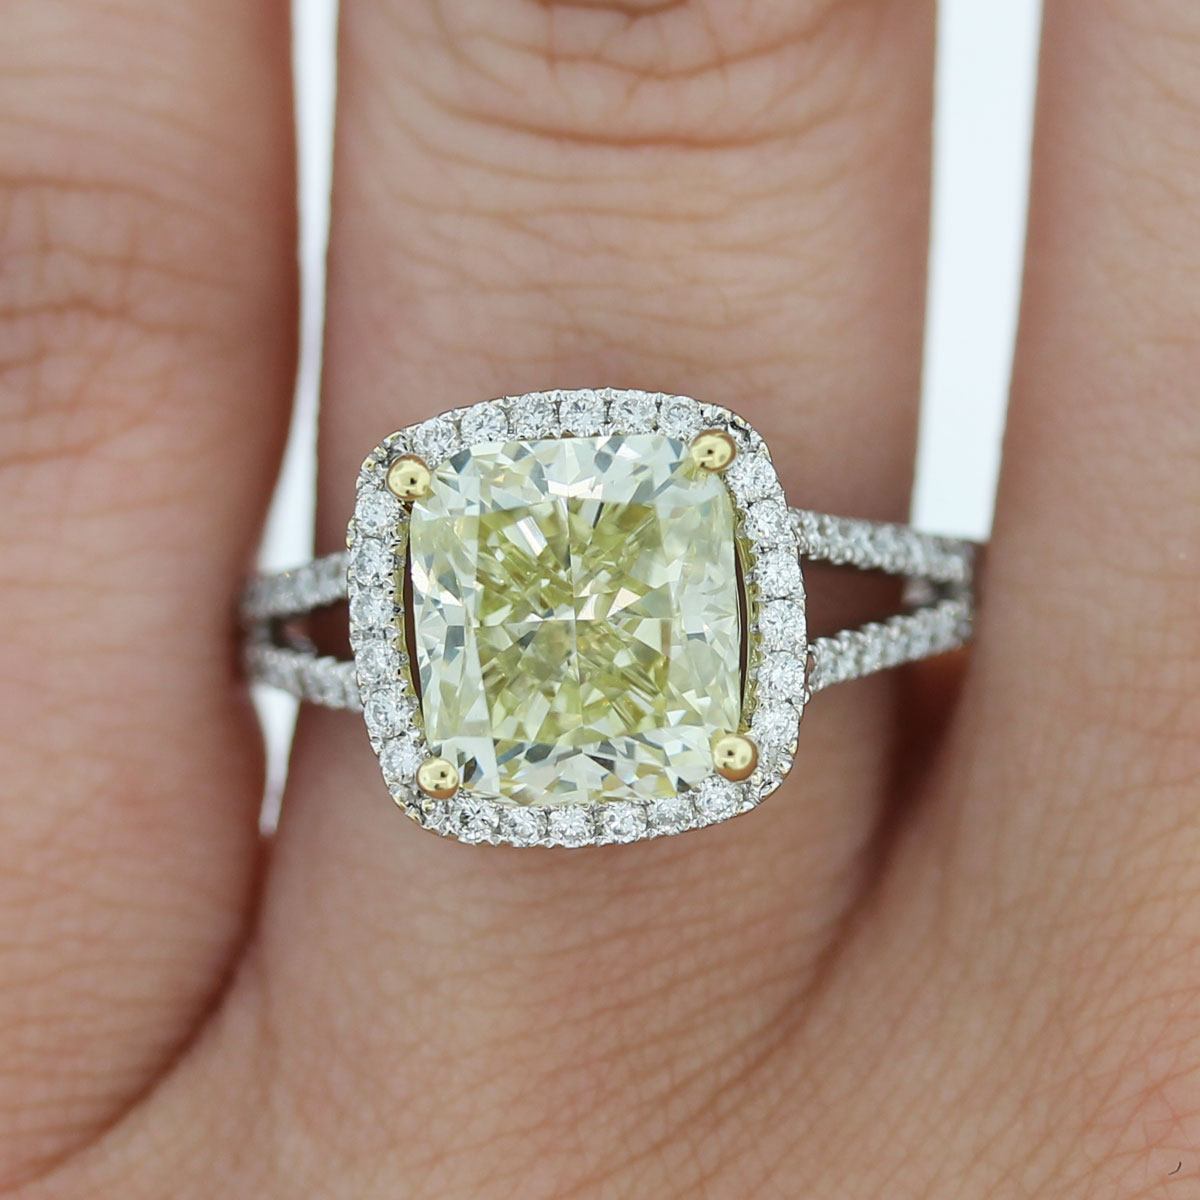 18k white gold fancy yellow cushion cut diamond engagement ring. Black Bedroom Furniture Sets. Home Design Ideas